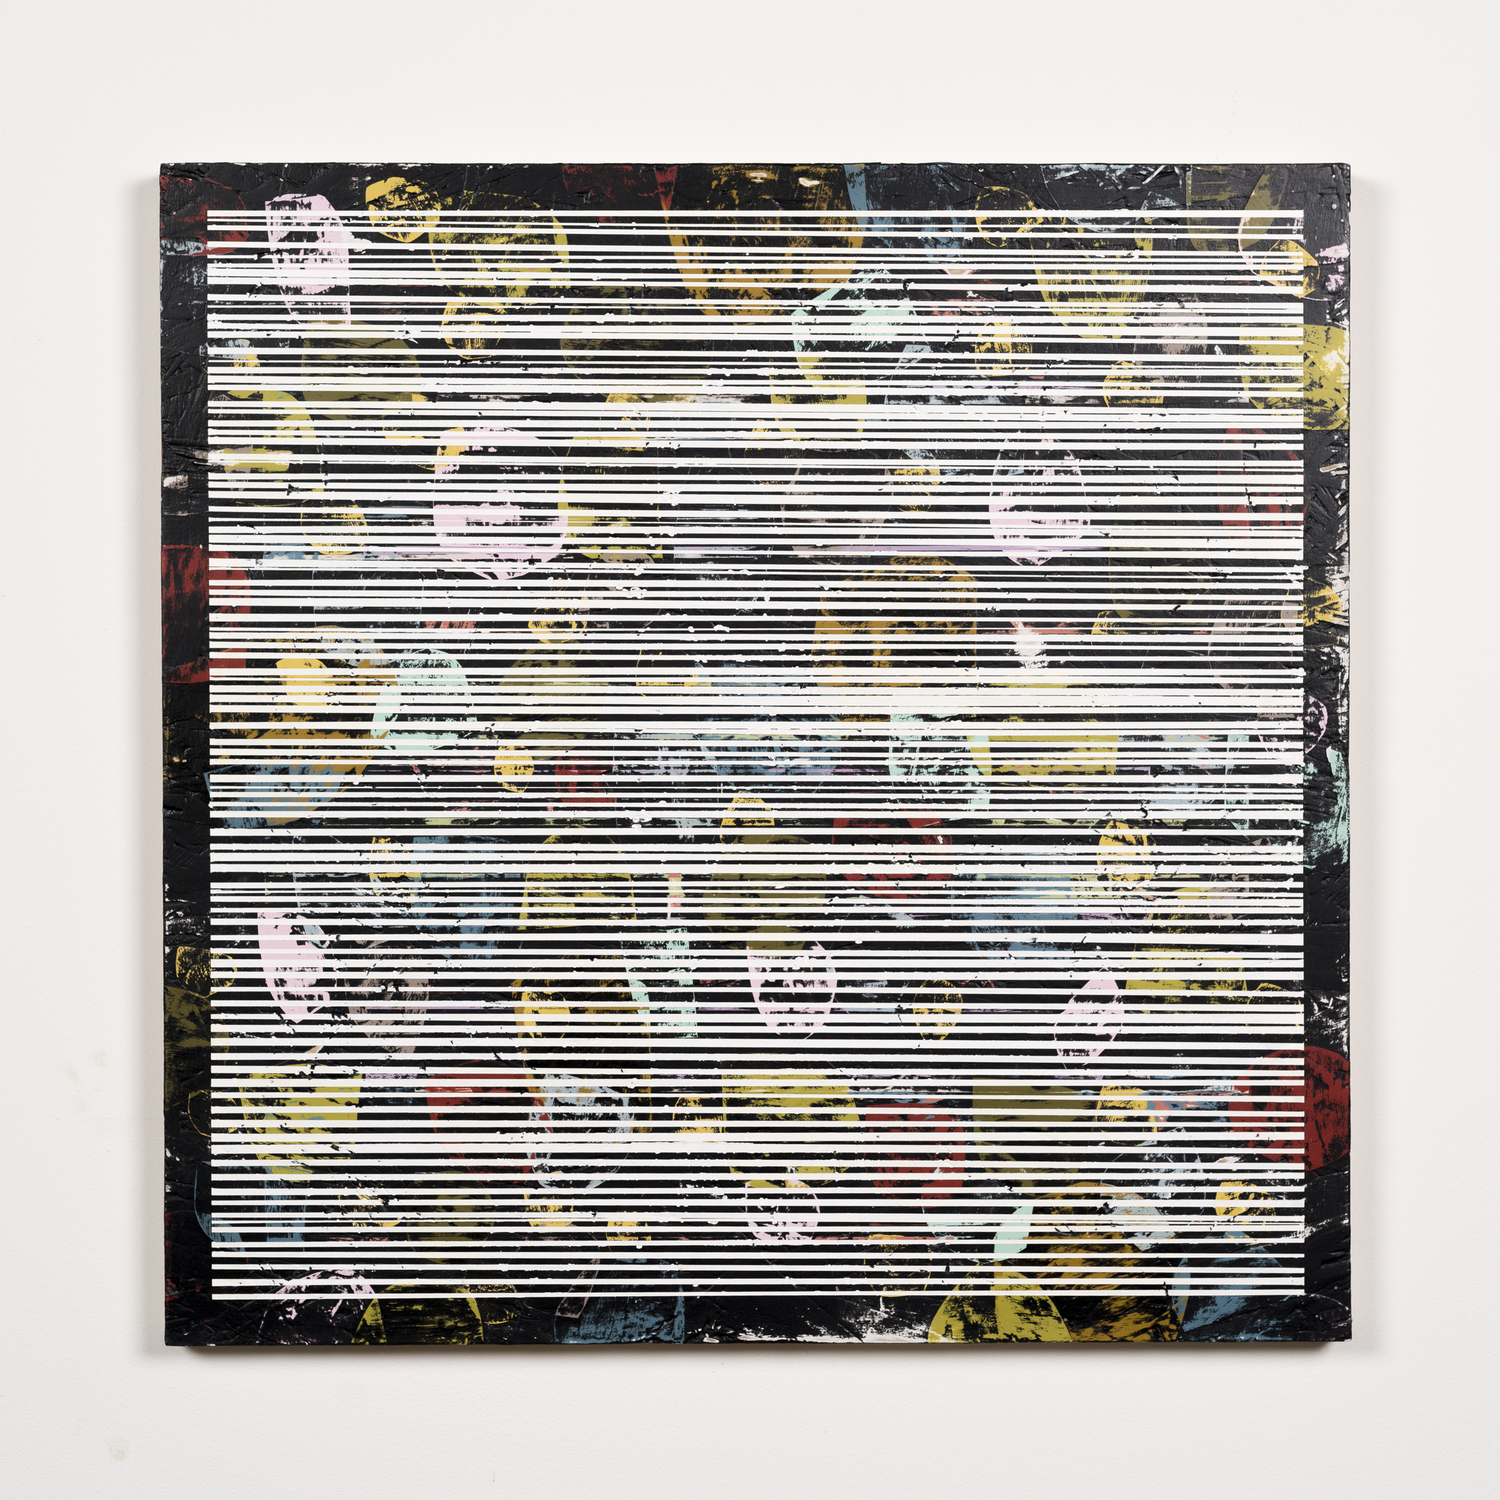 Nick Jaskey   Untitled 1  , 2015   House paint on wood panel   24 x 24  ""